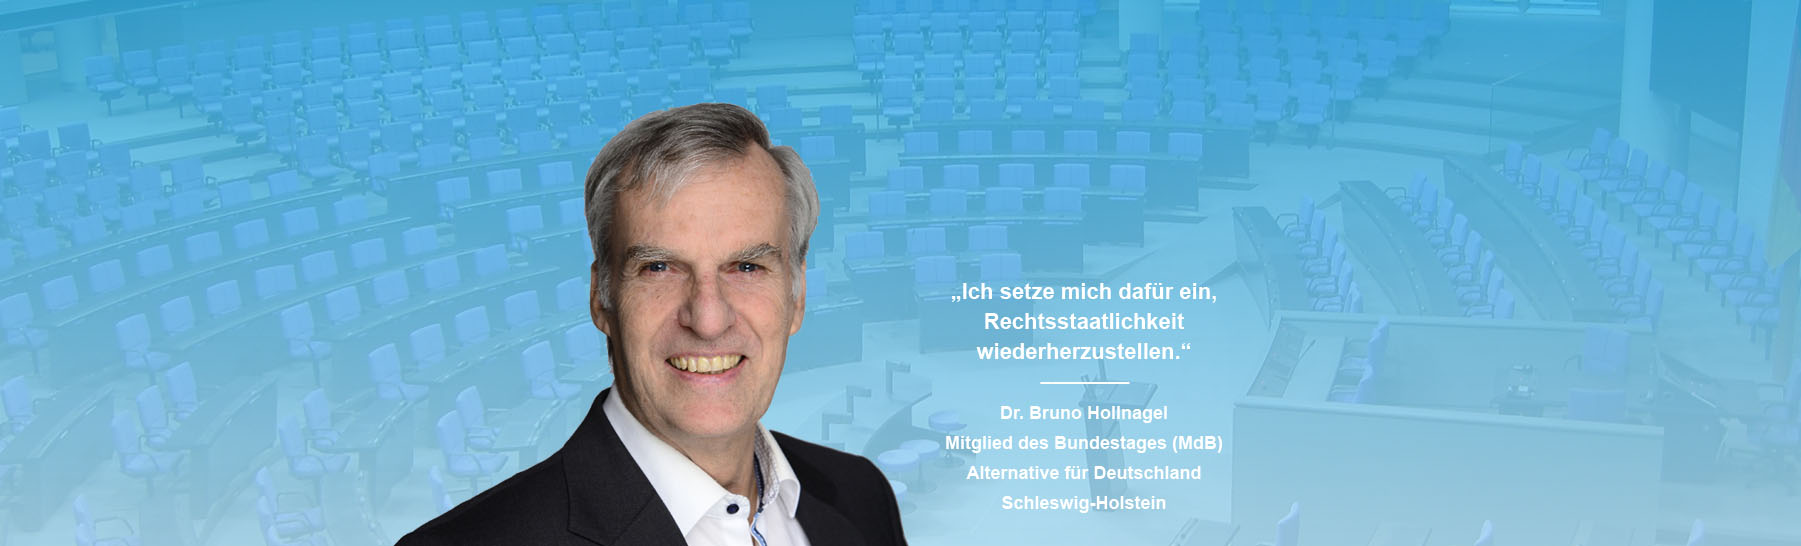 Dr. Hollnagel am 23. April zu Gast im Hamburger Rathaus